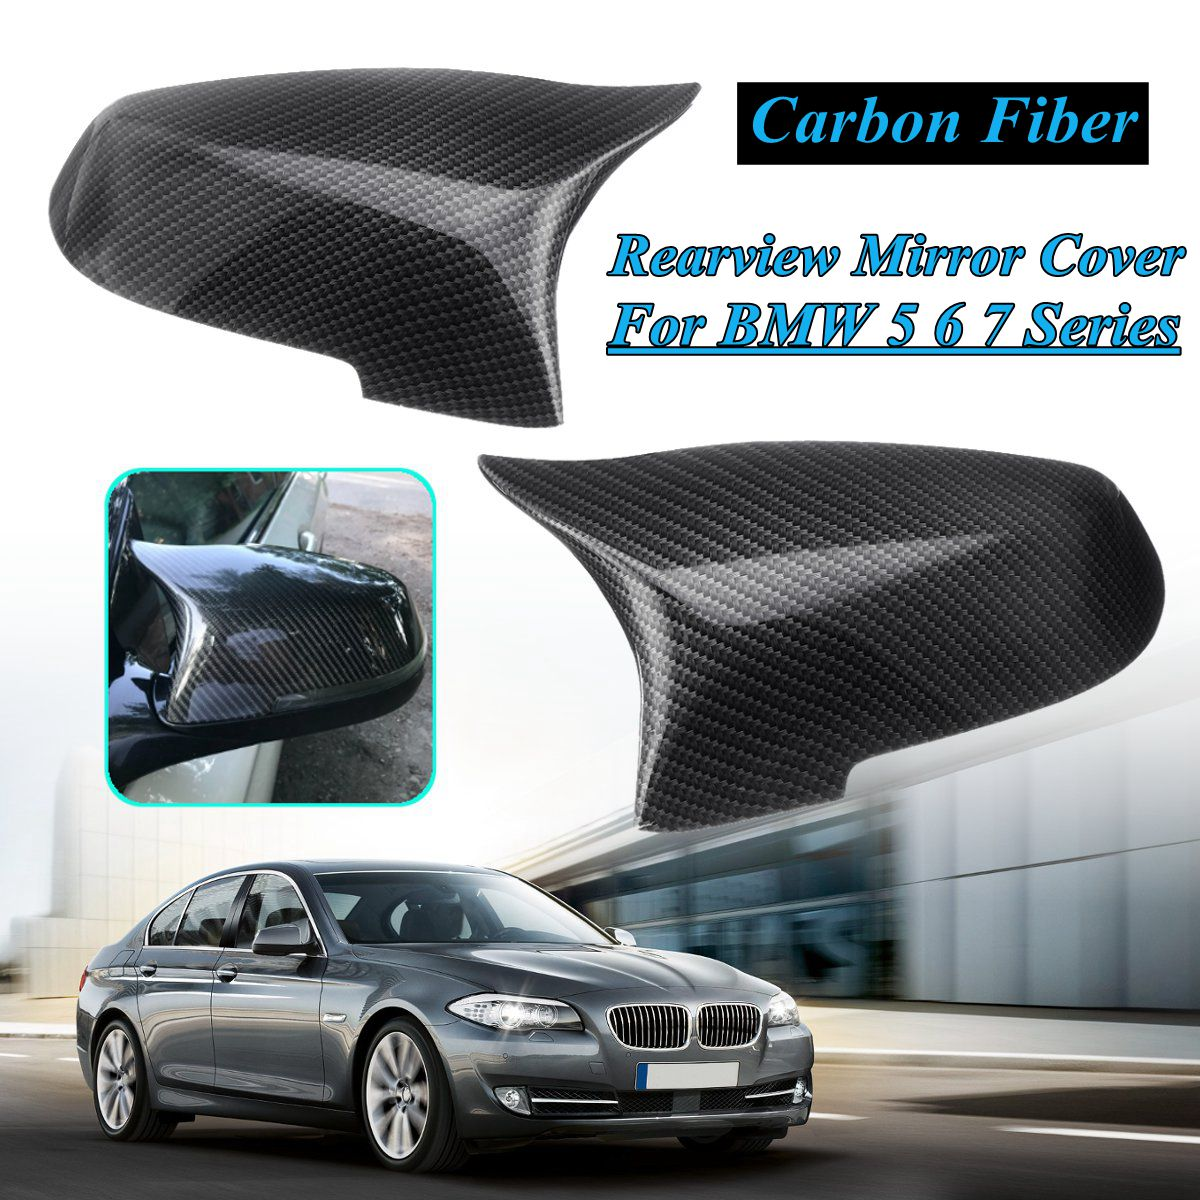 Pair Side Rearview Mirror Cover Cap For <font><b>Bmw</b></font> 5 6 7 Series F10 F18 <font><b>F11</b></font> F06 F07 F12 F13 F01 2014 <font><b>2015</b></font> 2016 Gloss black Carbo fiber image